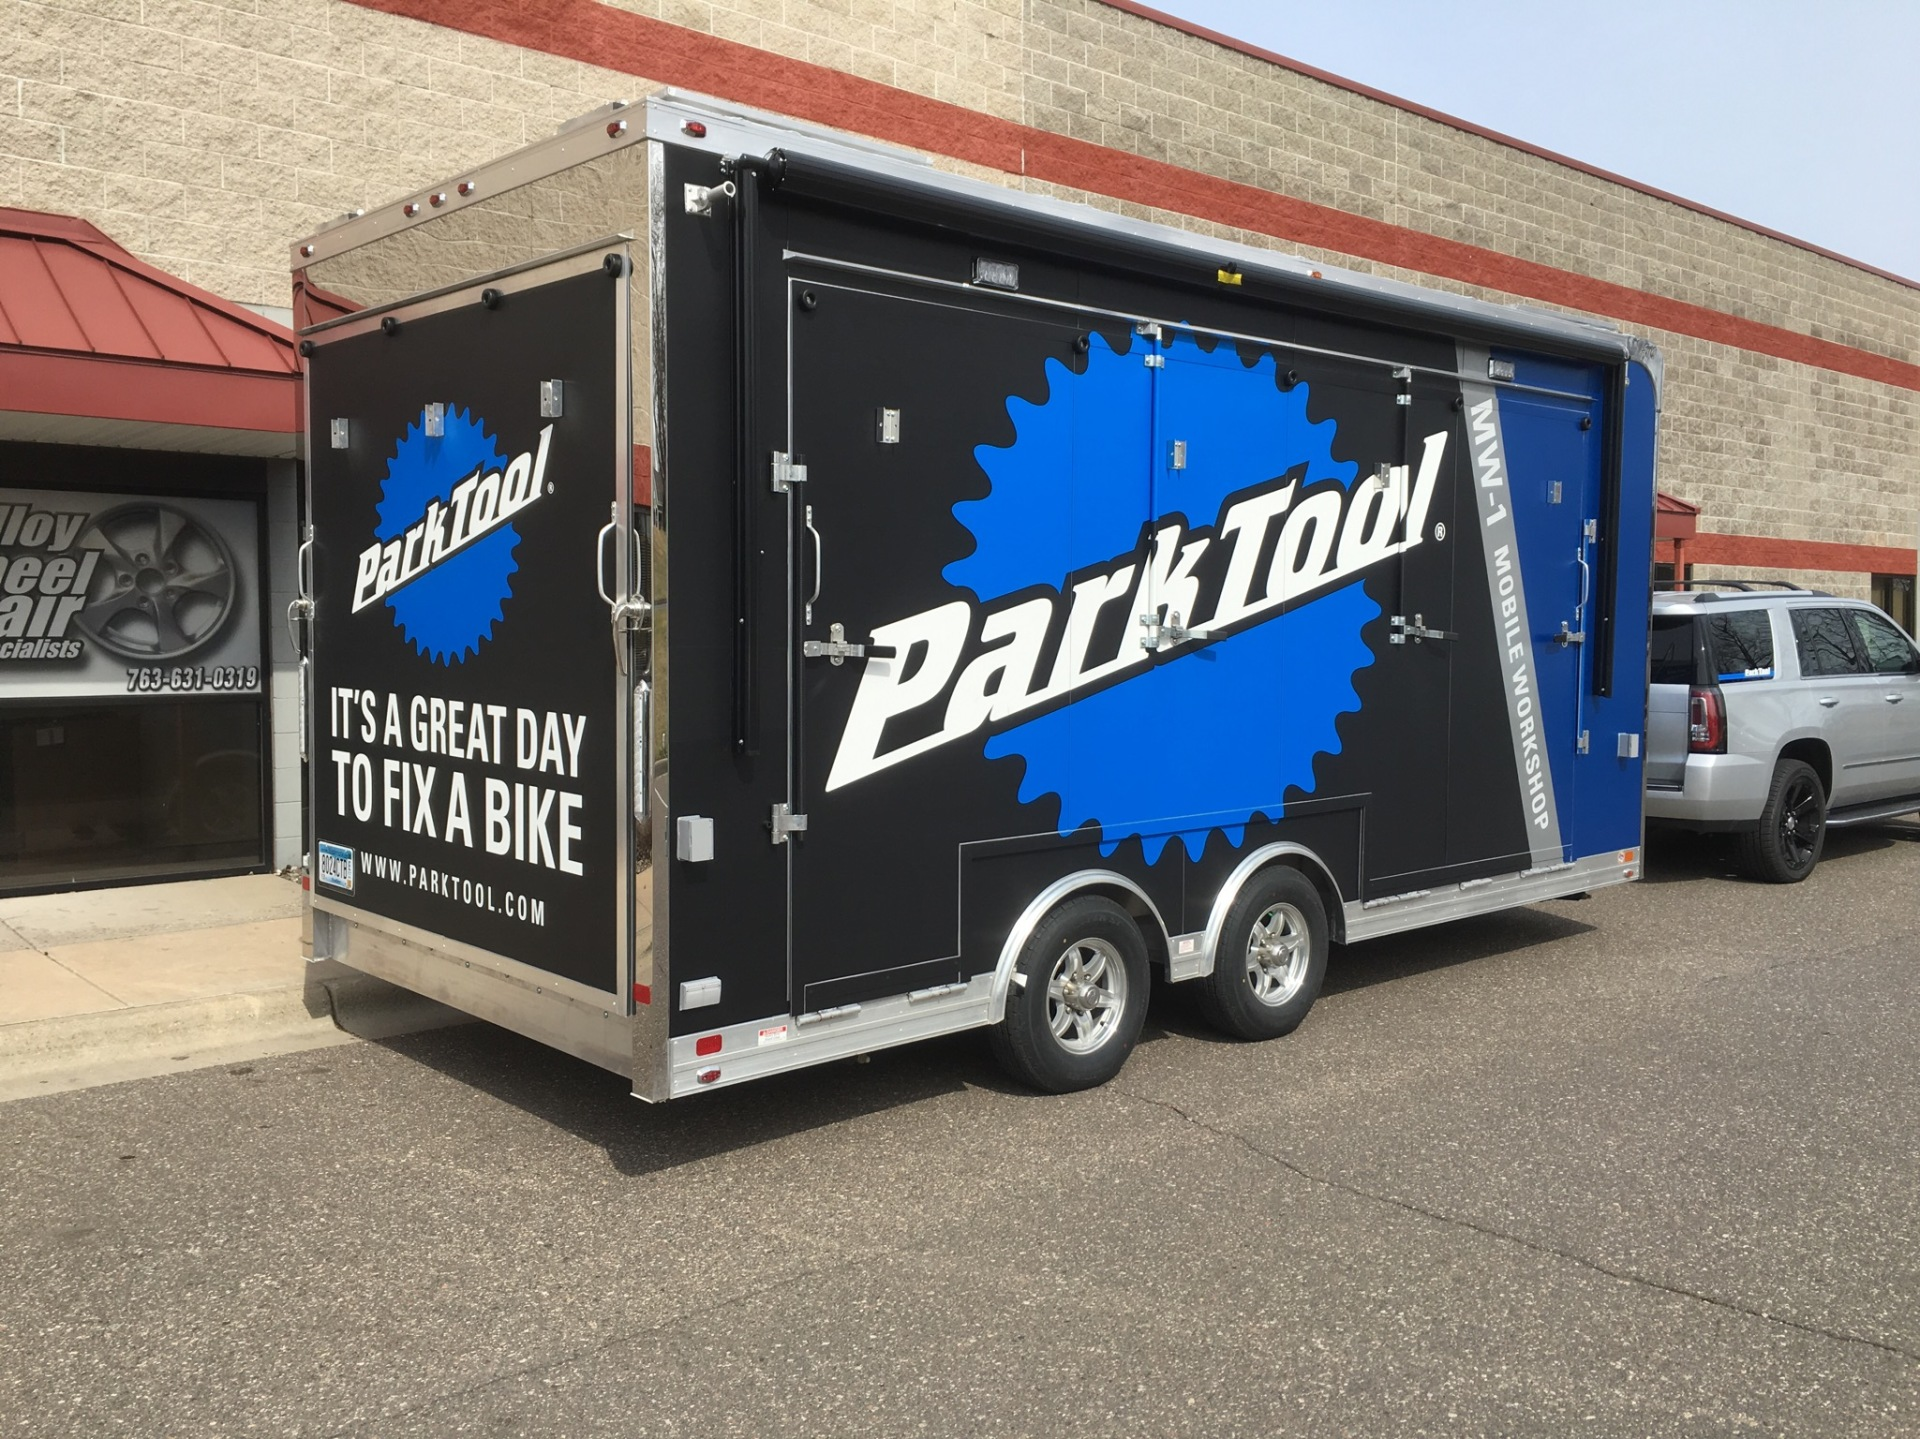 Vehicle Wraps MN, Truck wraps, car wraps, graphics, decals,fleet graphics